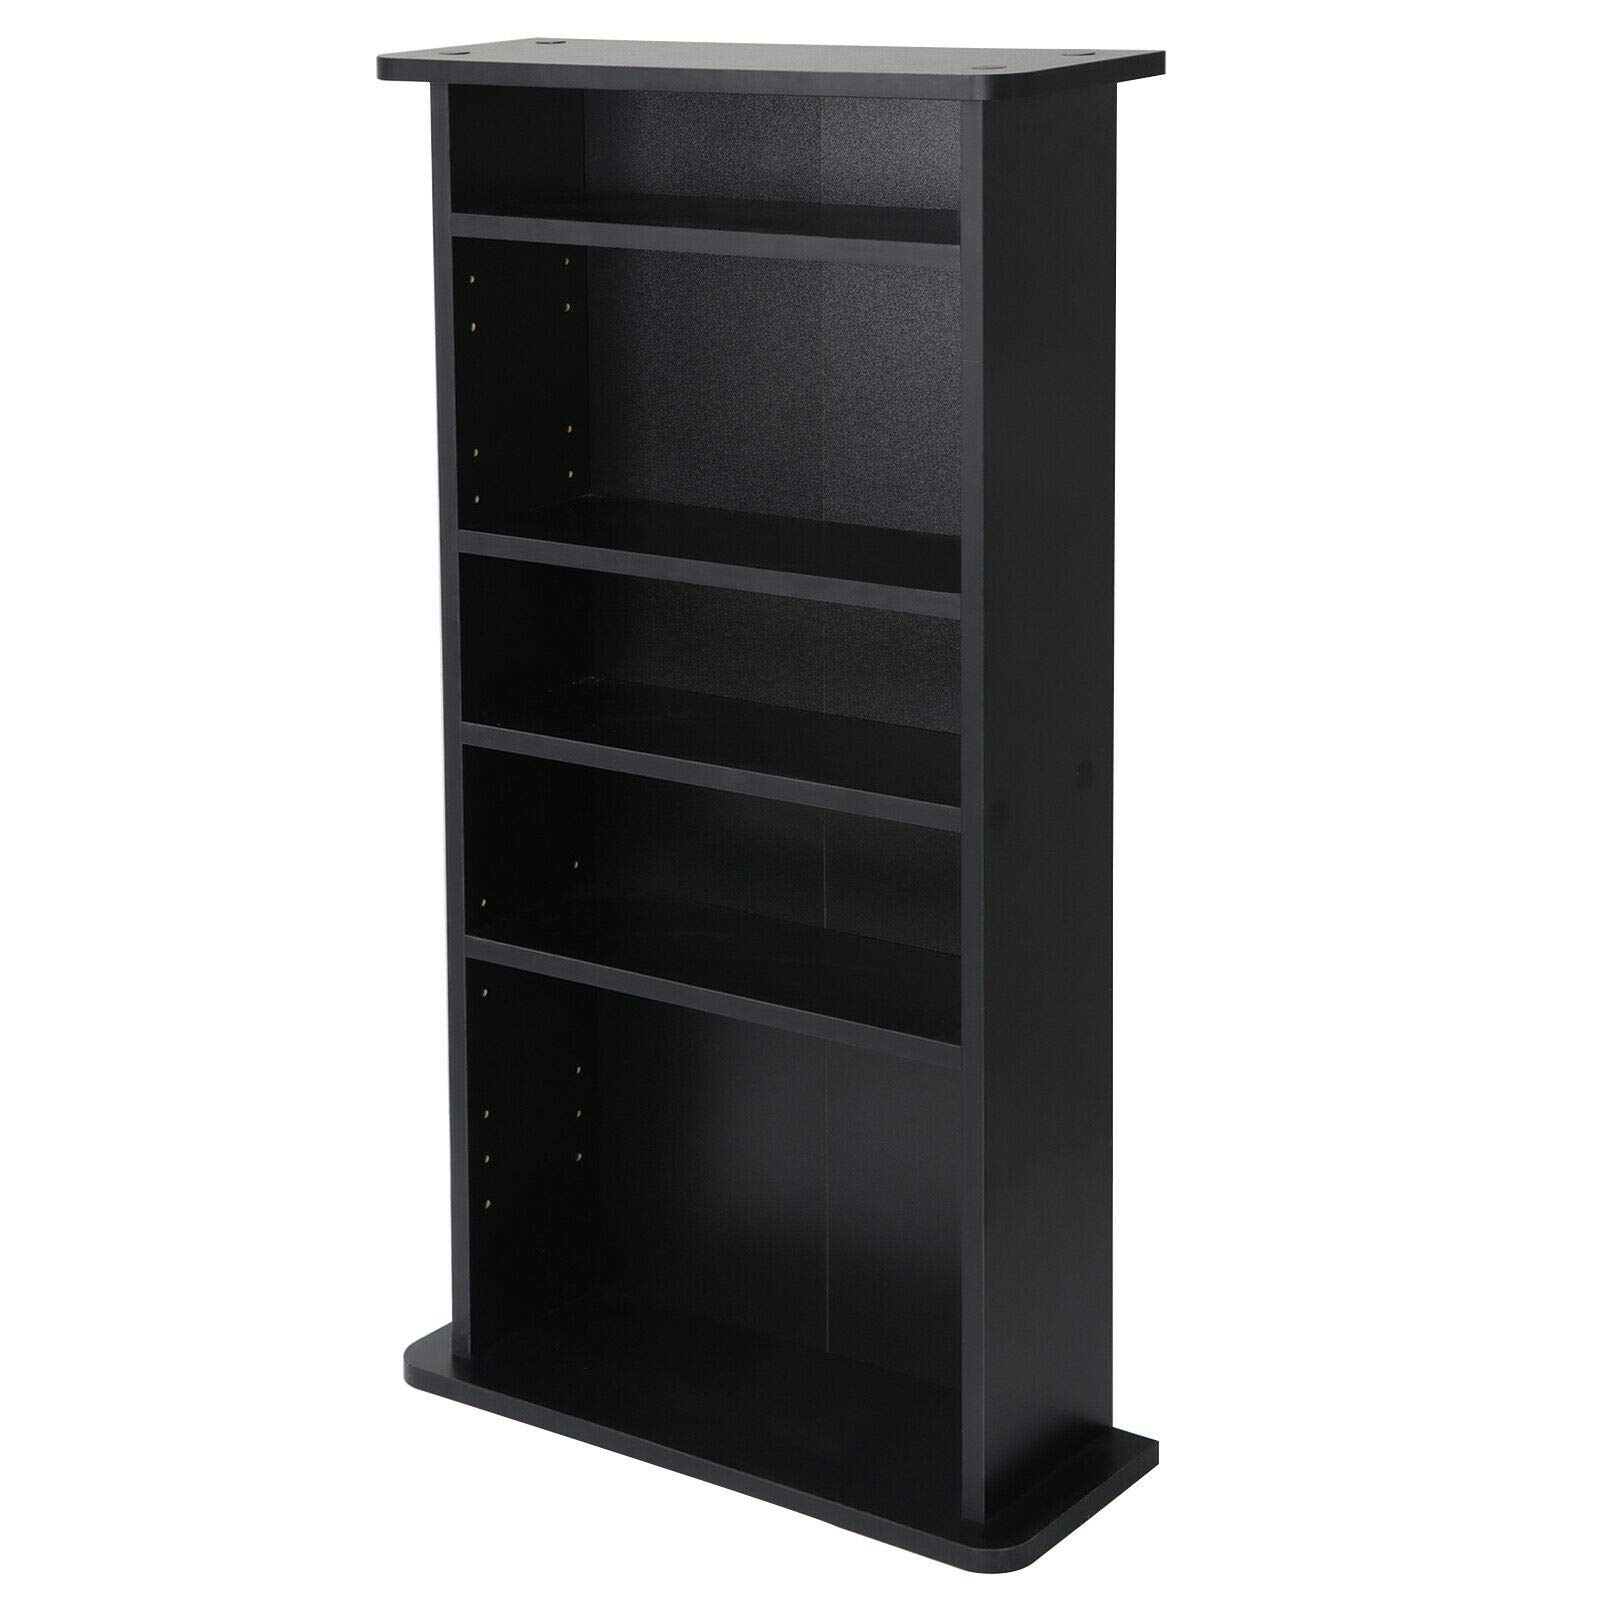 PloybeeShop Height DVD CD This Media Cabinet Storage Adjustable 5 Layers Stand Free Standing 36'' by PloybeeShop